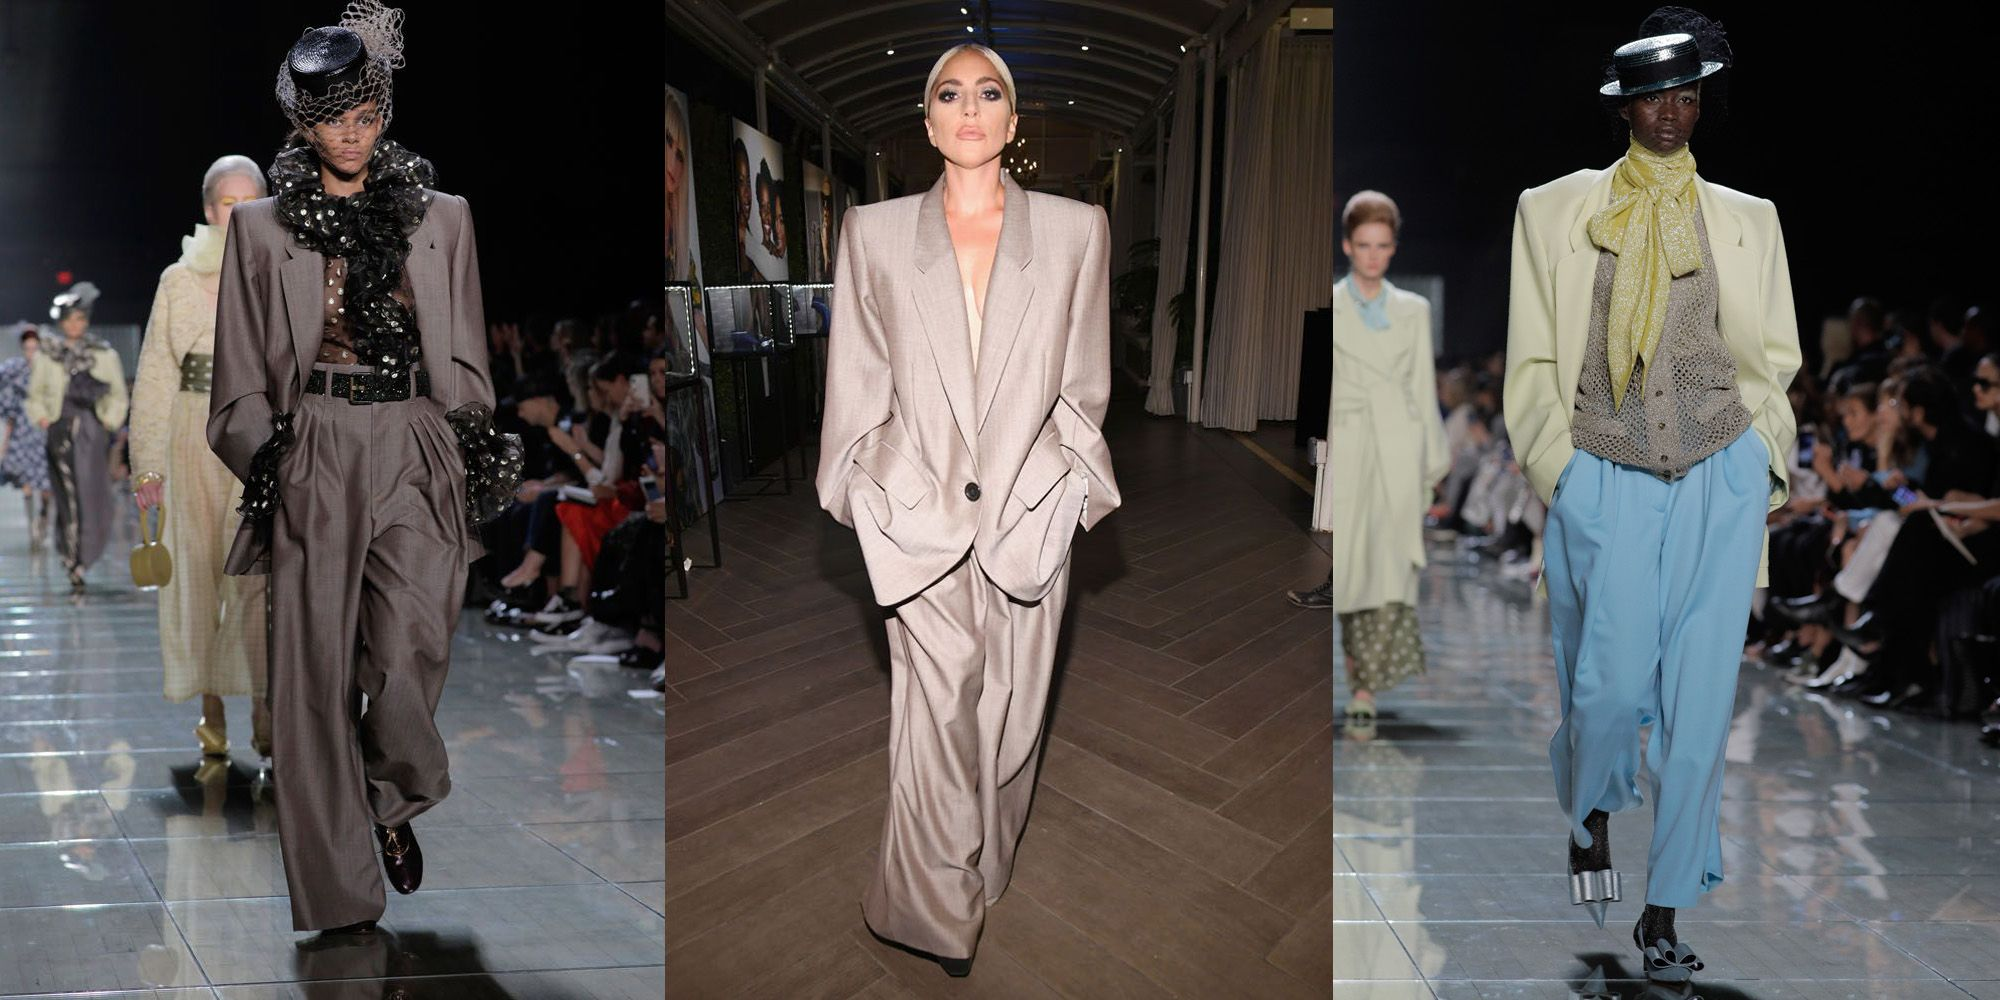 lady gaga powersuit marc jacobs modetrend winter 2018/2019